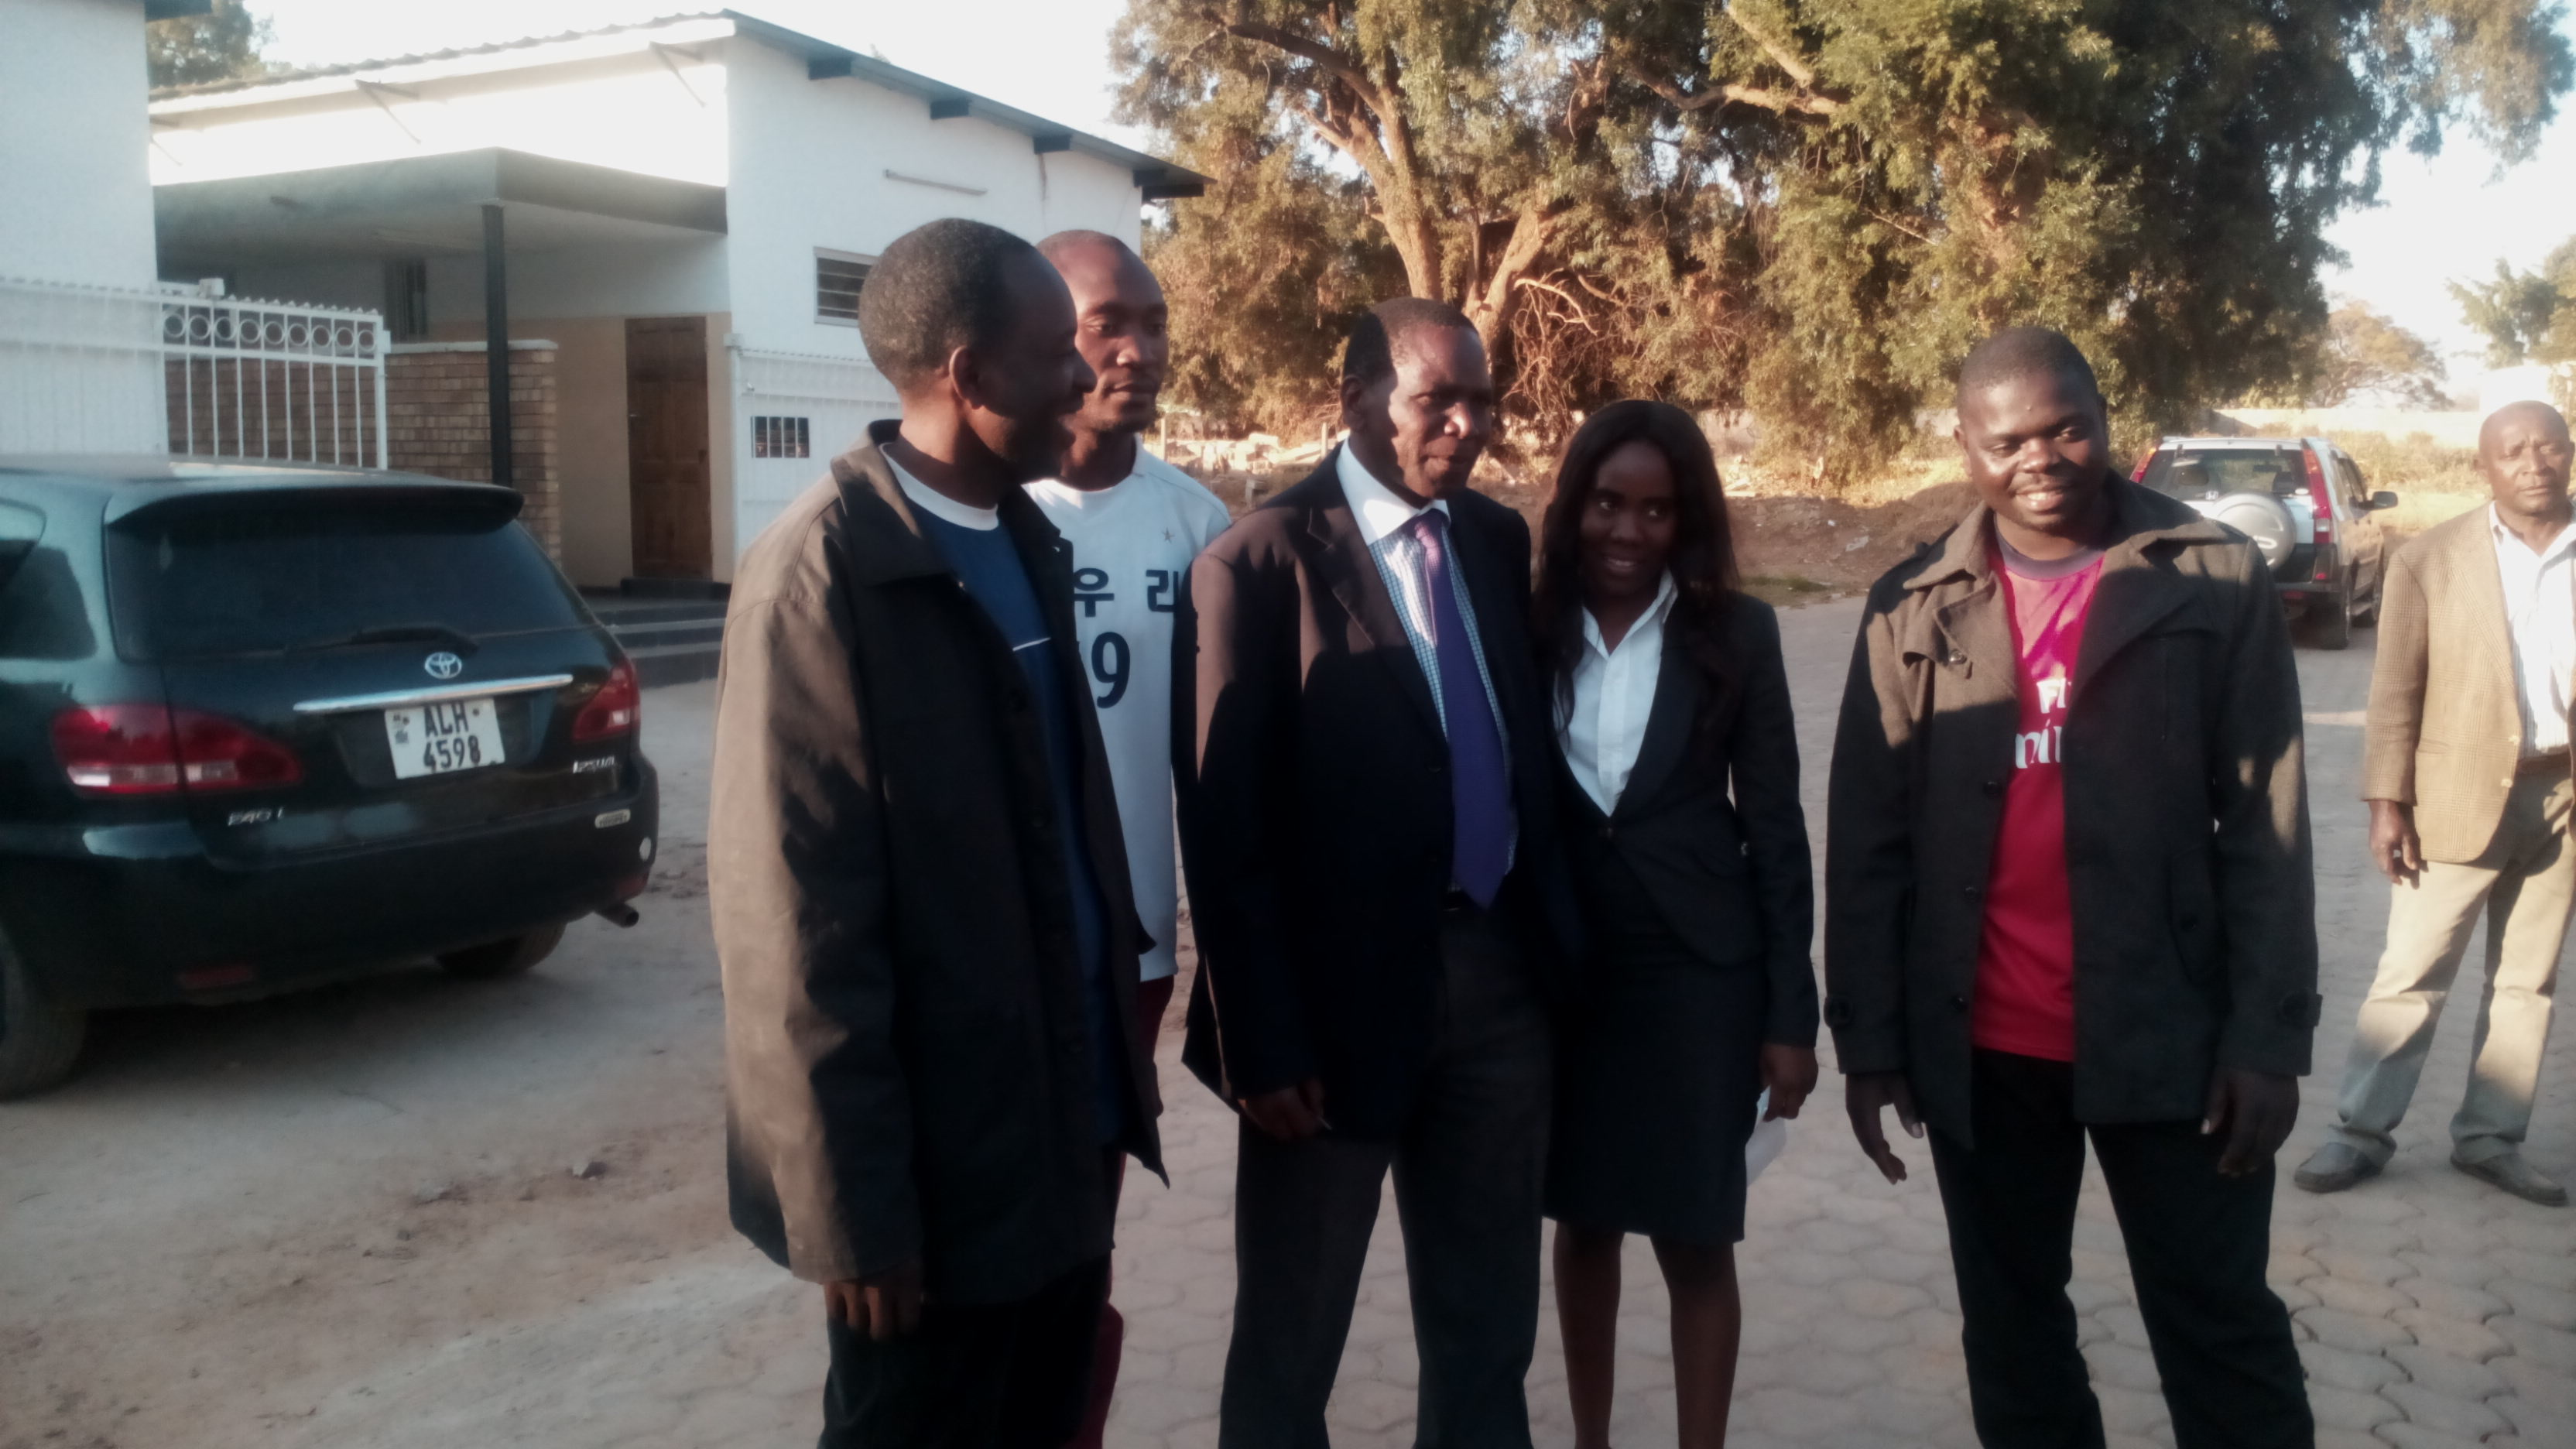 UPND youths and their lawyers Mulilo Kabesha and Mwangala Mwala (in middle) at the Kabwe magistrate court.